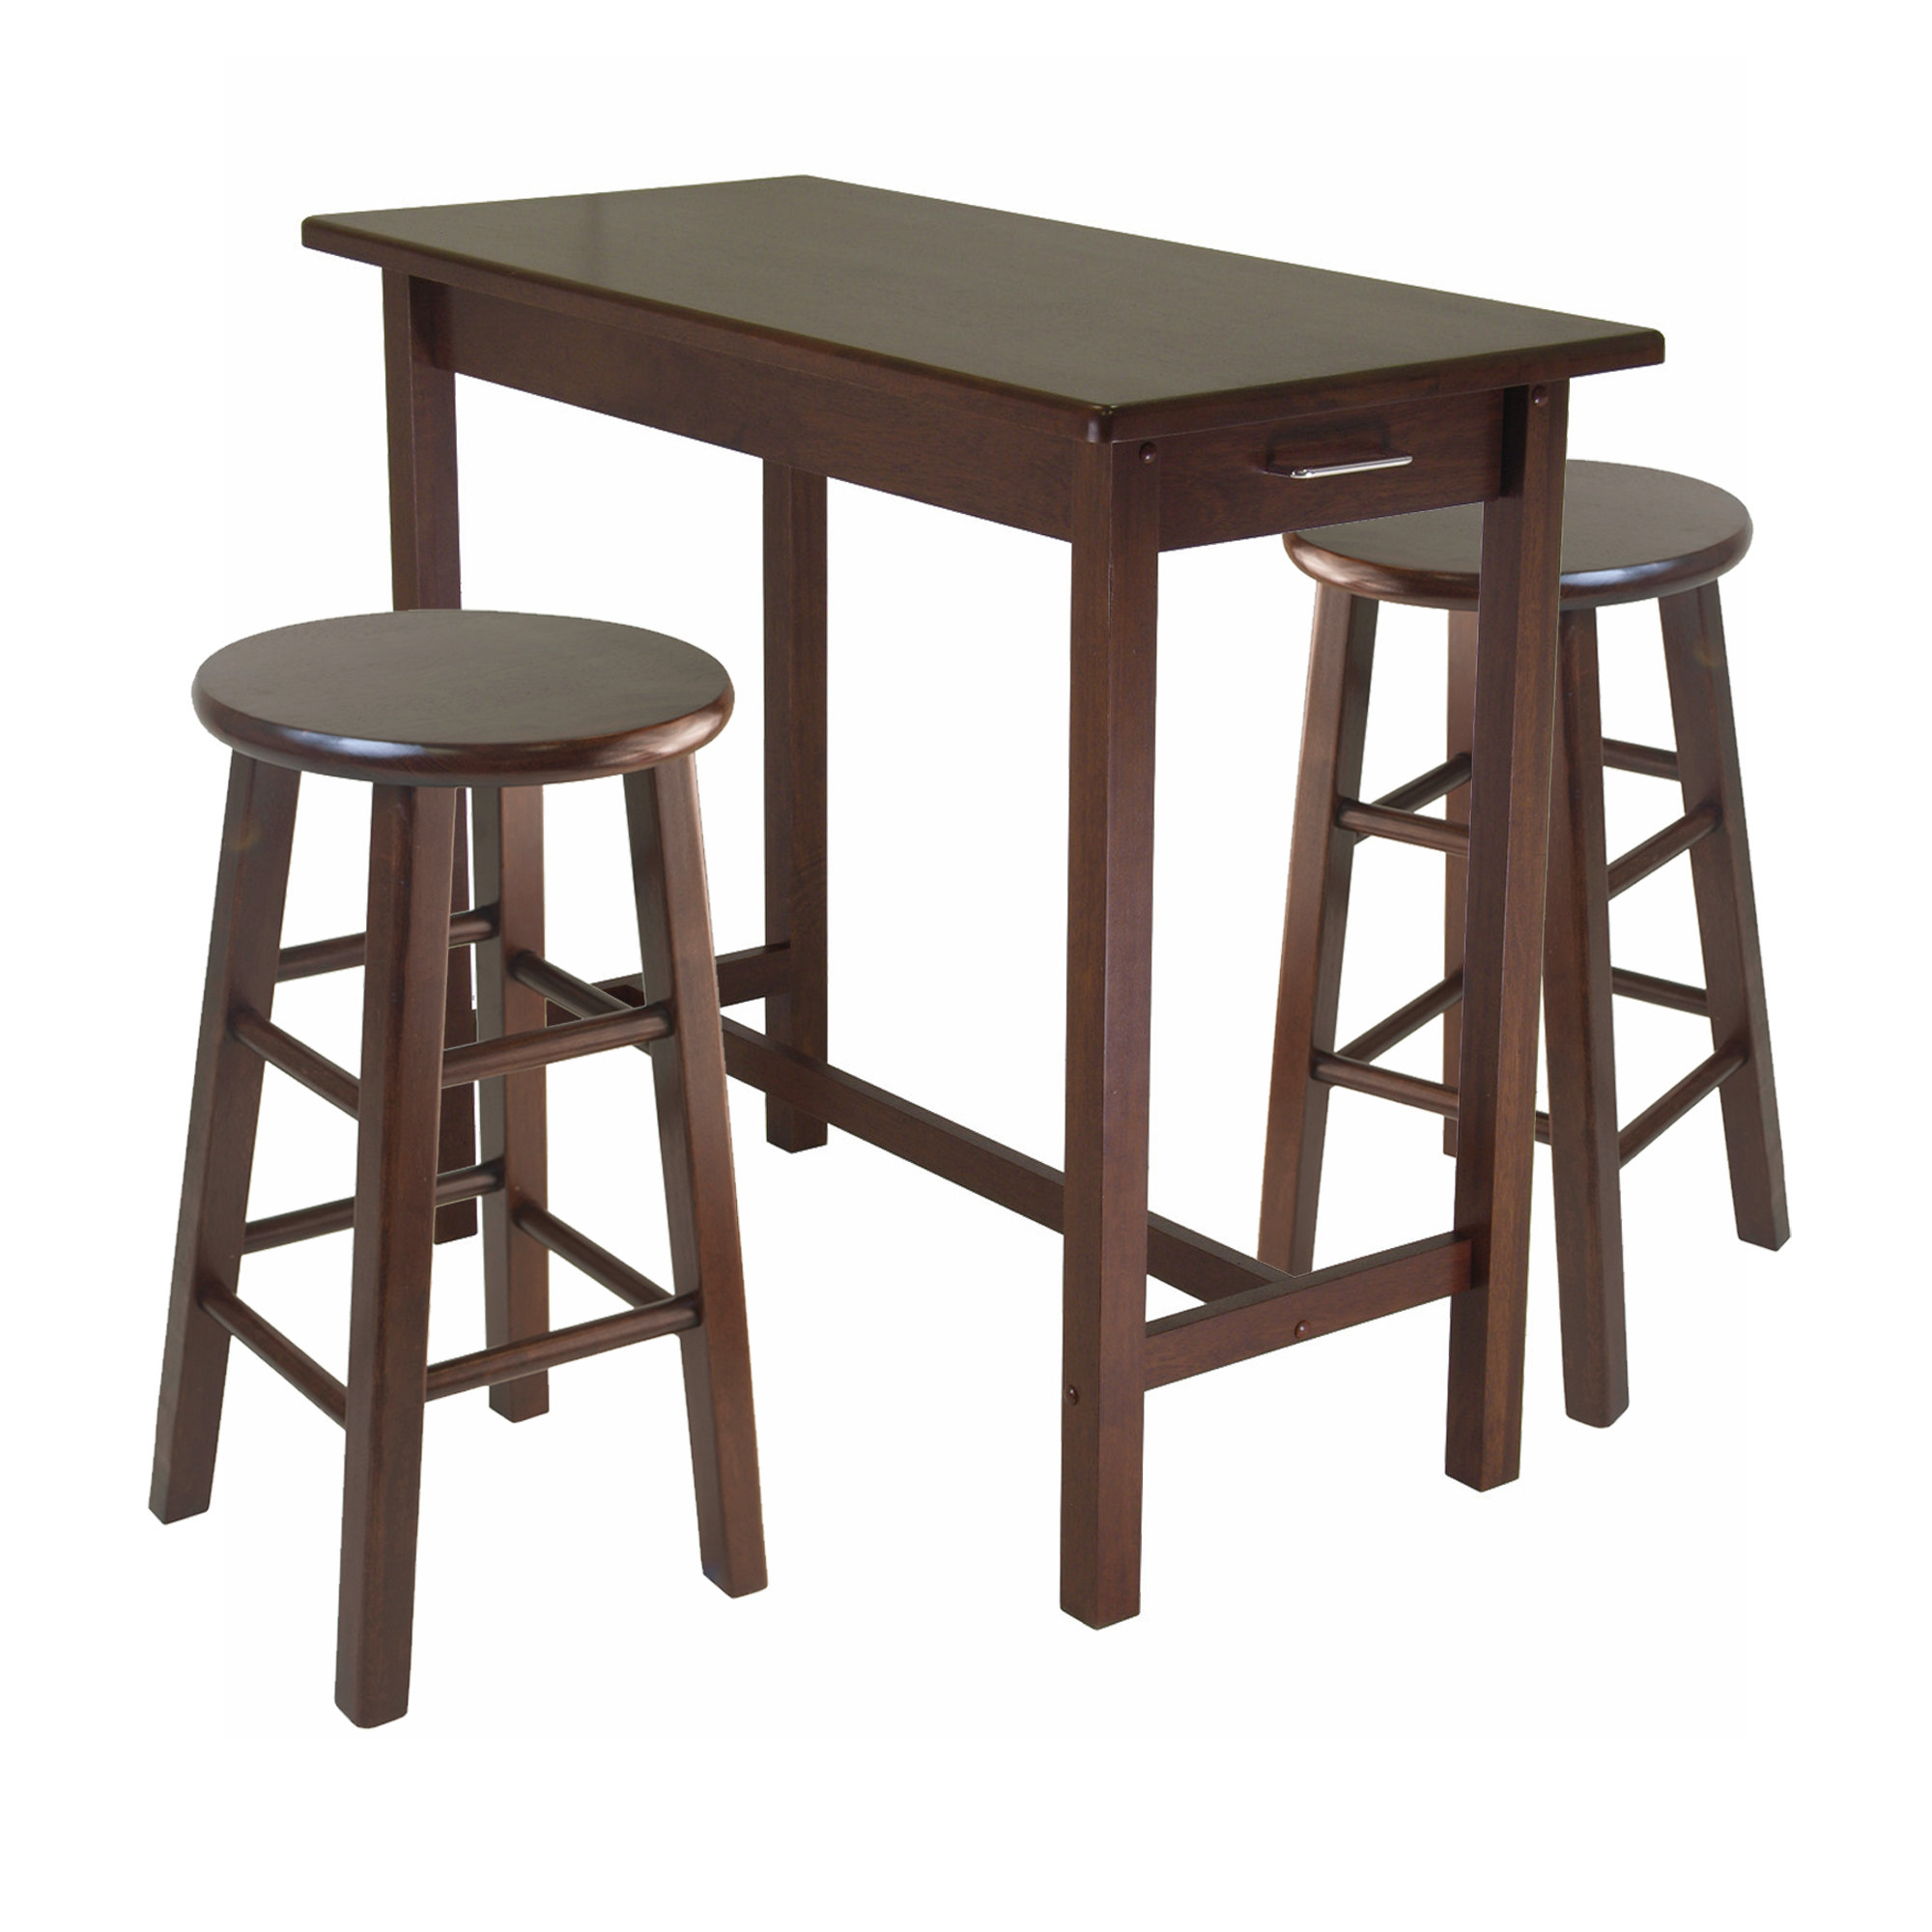 Preferred 3 Piece Breakfast Dining Set Throughout Miskell 3 Piece Dining Sets (View 12 of 20)